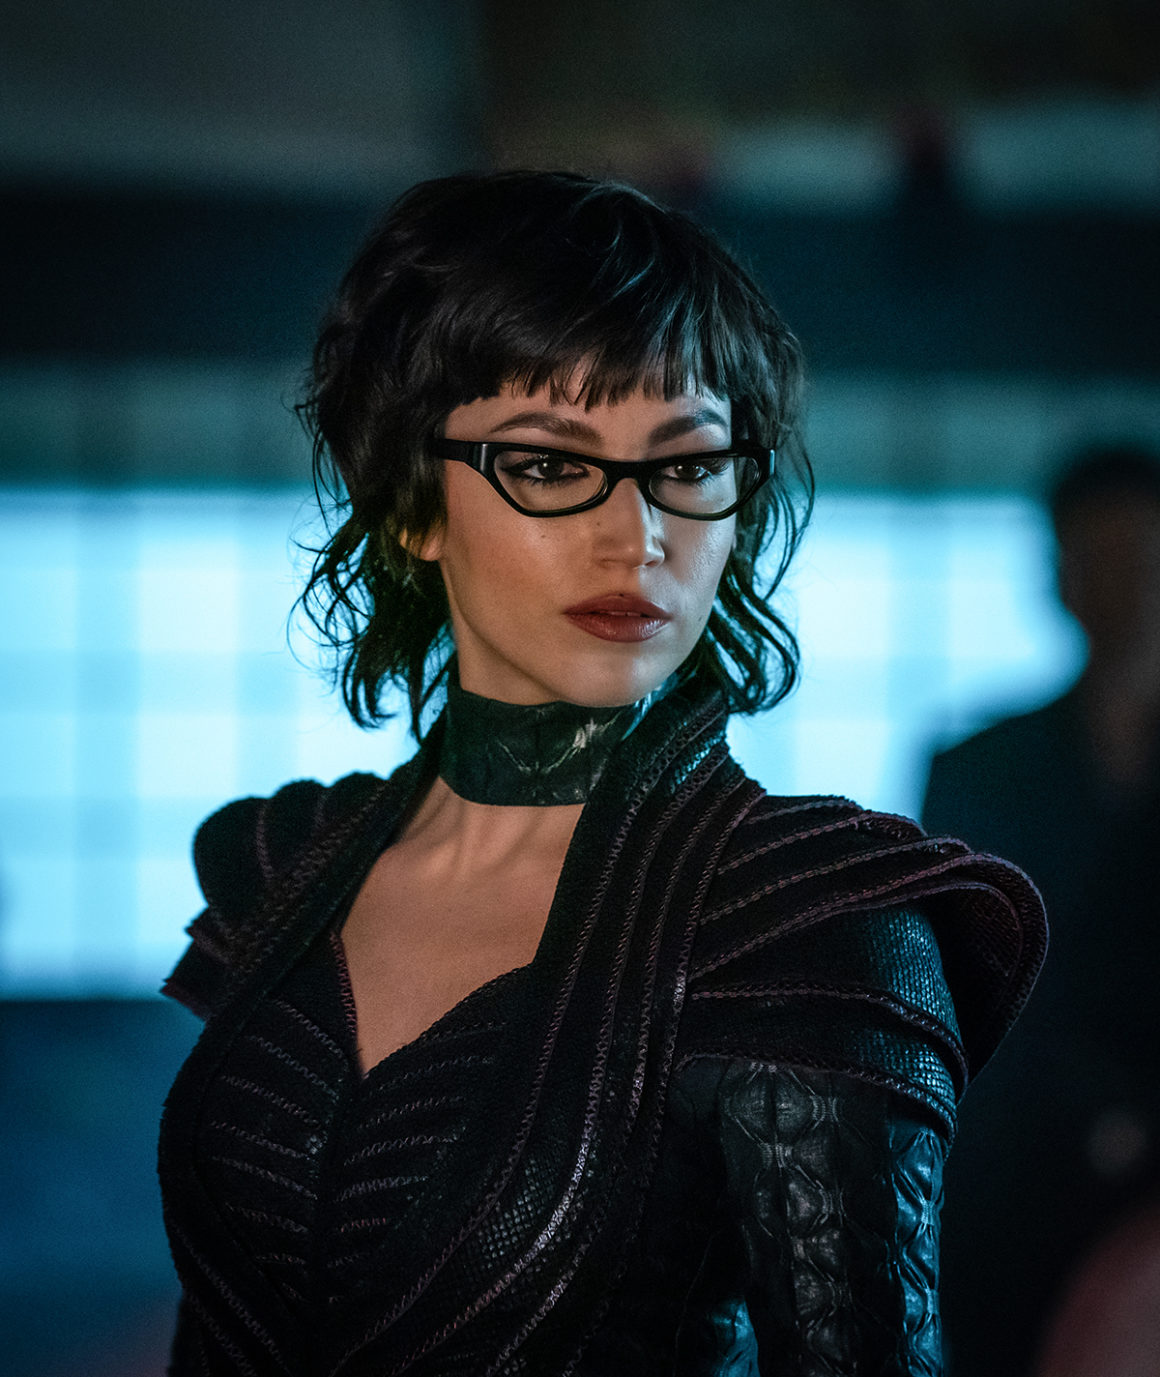 Ursula Corbero plays The Baroness in Snake Eyes: G.I. Joe Origins from Paramount Pictures, Metro-Goldwyn-Mayer Pictures and Skydance.